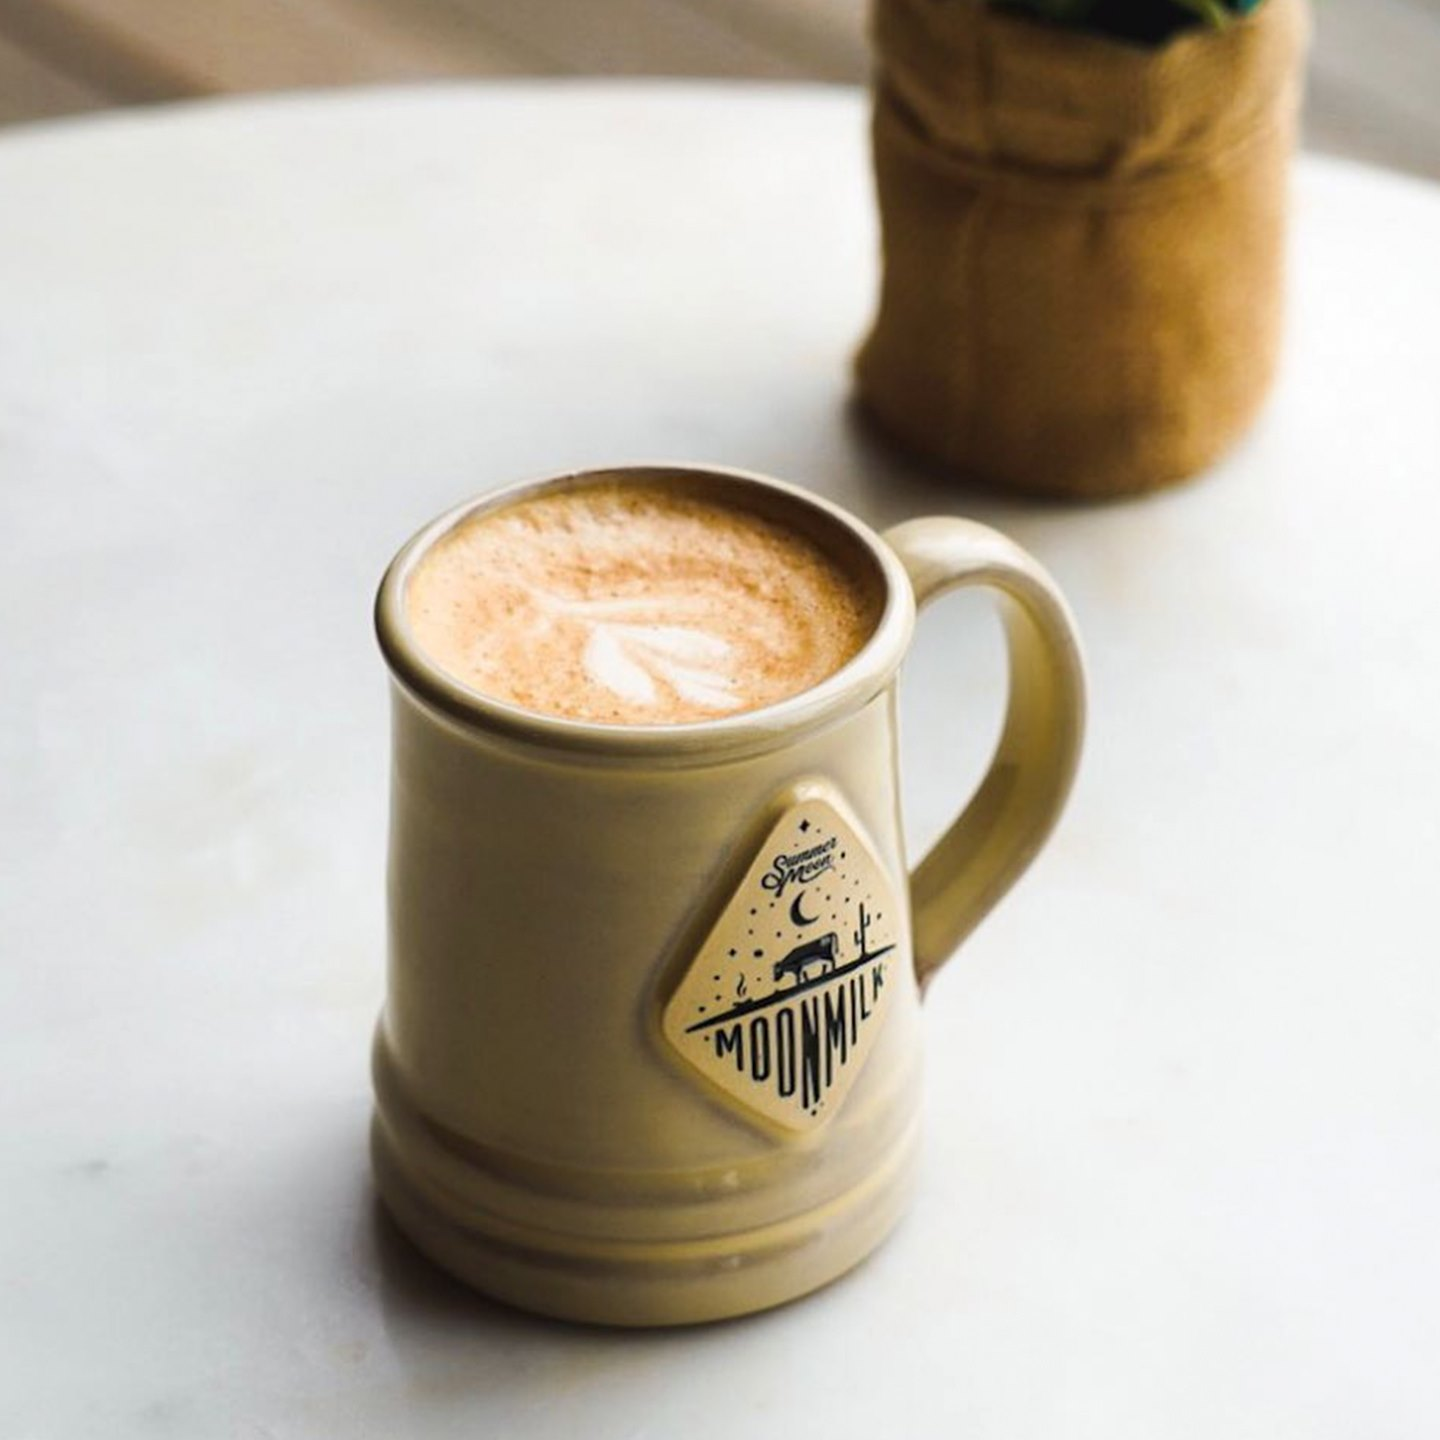 Wood-Fired Coffee Chain Brings Moon Milk and Breakfast Tacos to Round Rock